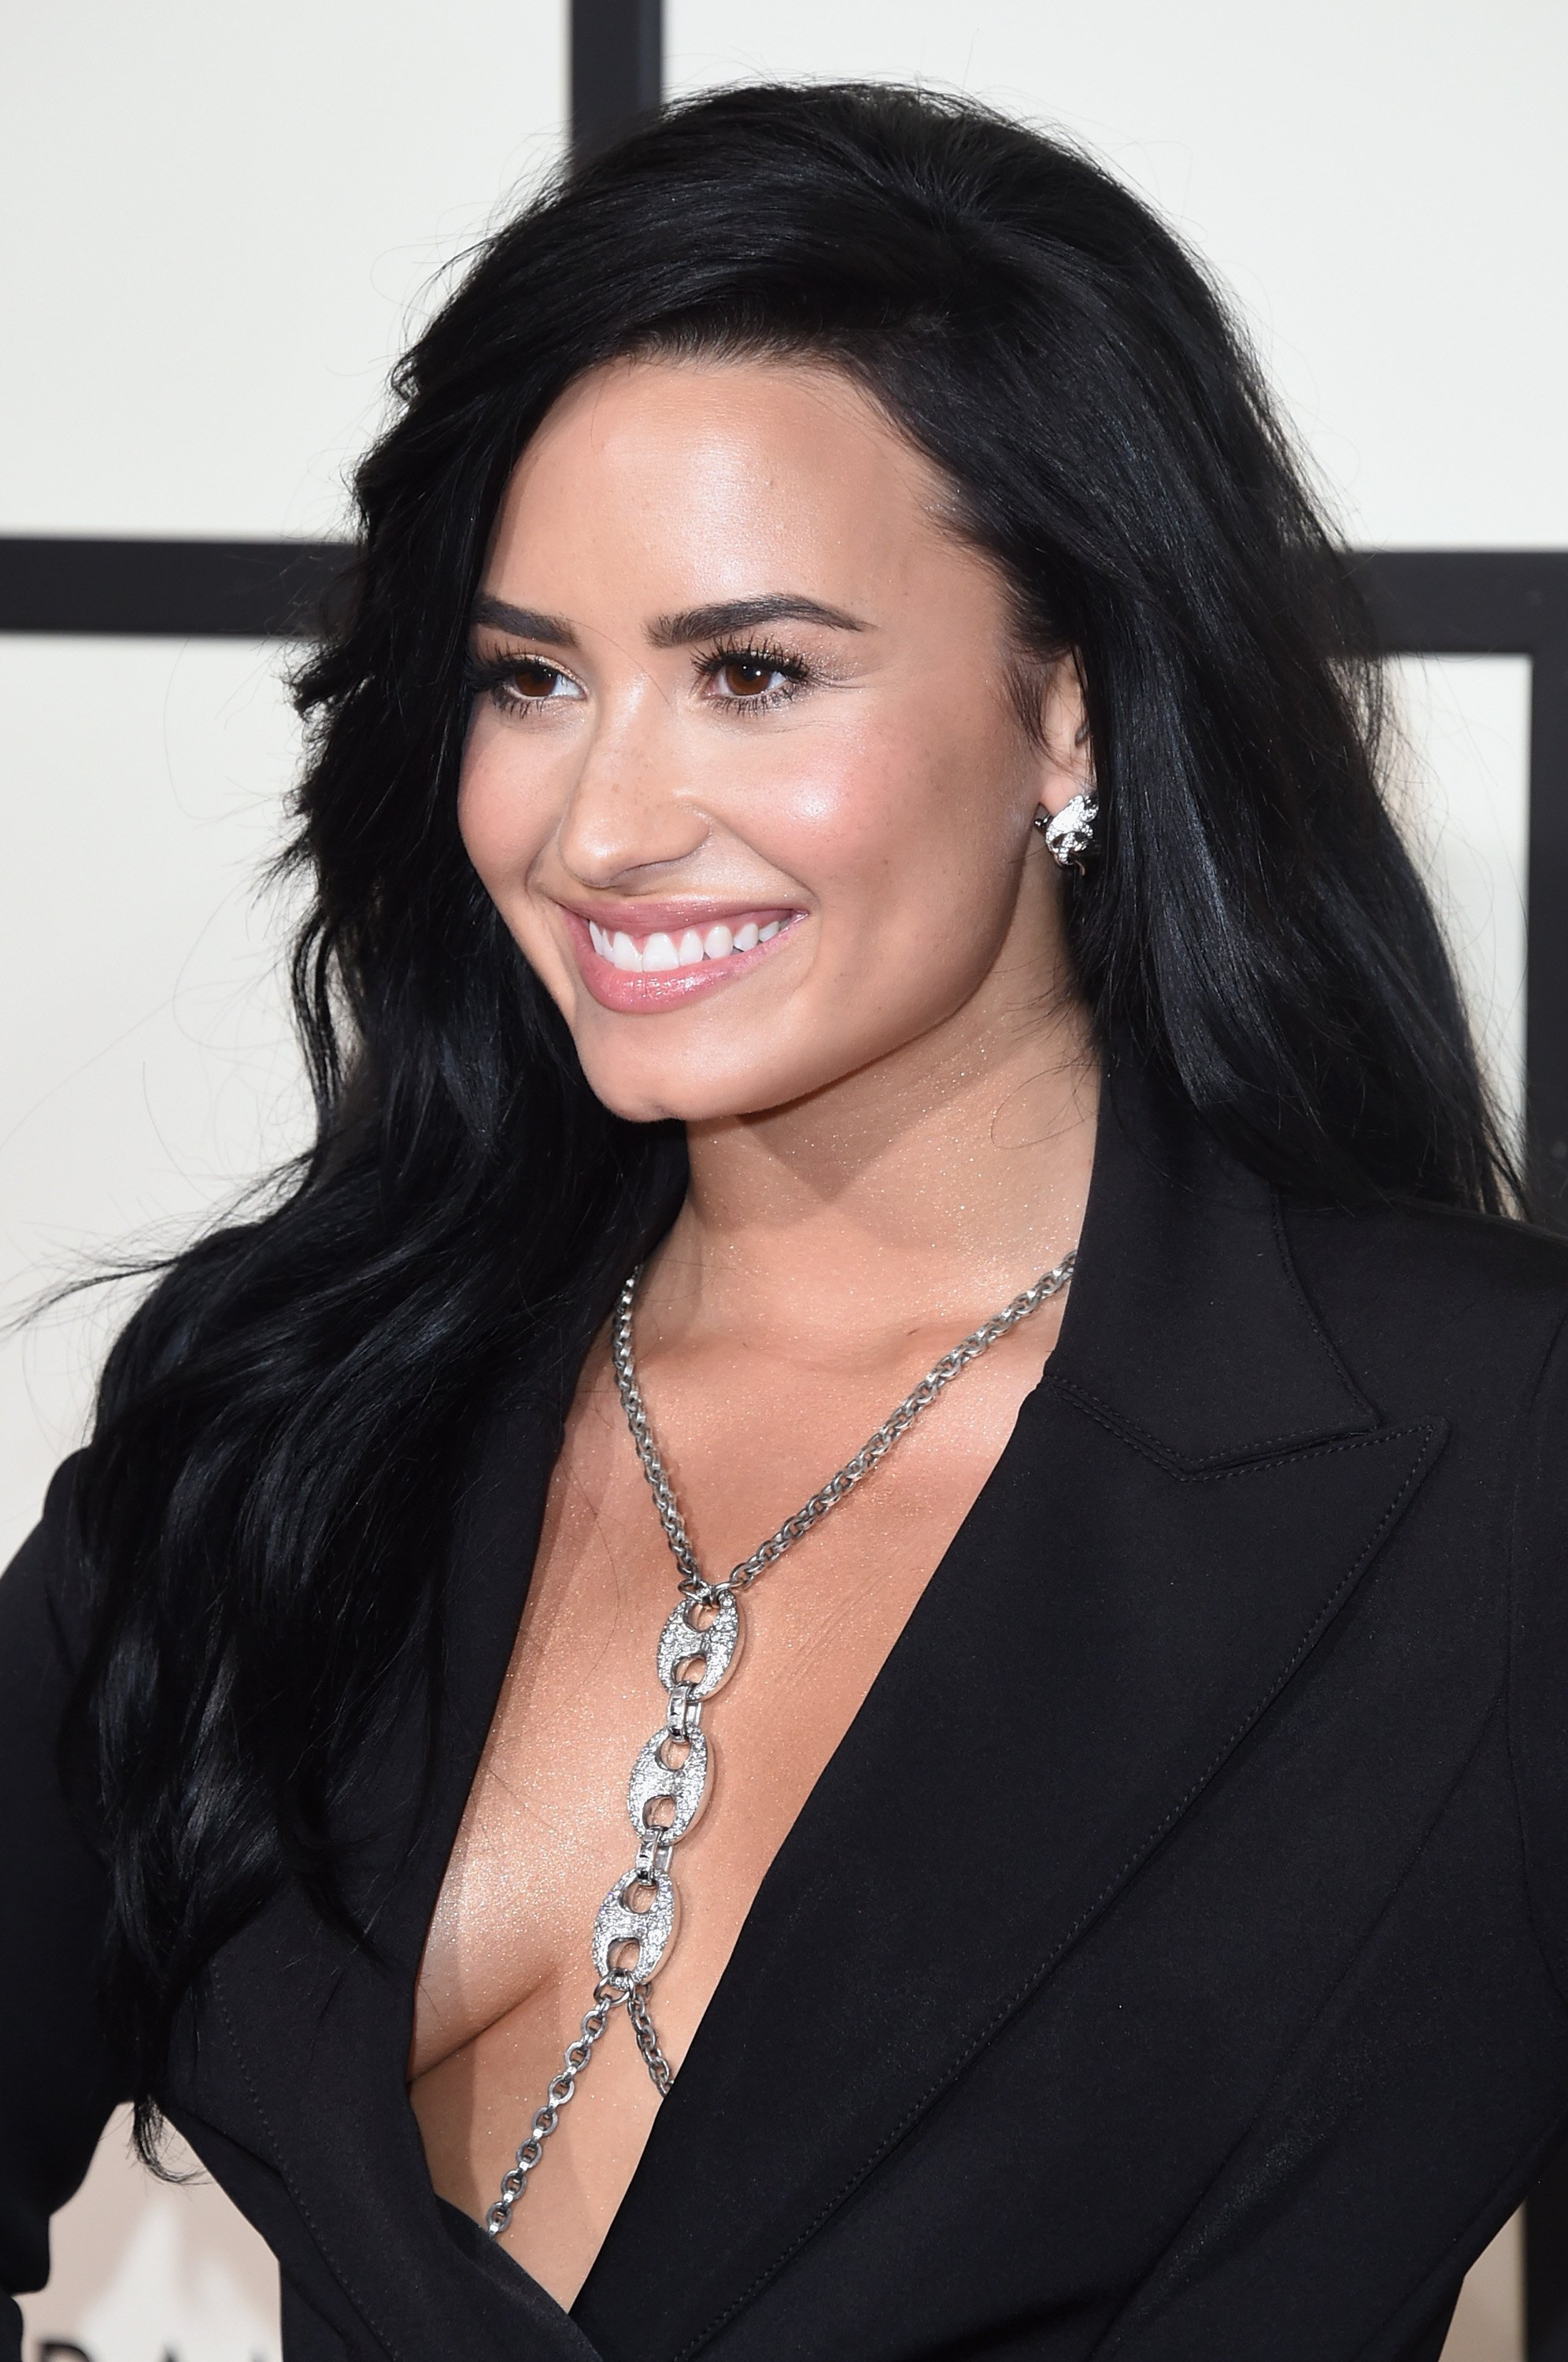 Singer Demi Lovato during the 2016 Grammy Awards in Staples Center.   Photo: Getty Images